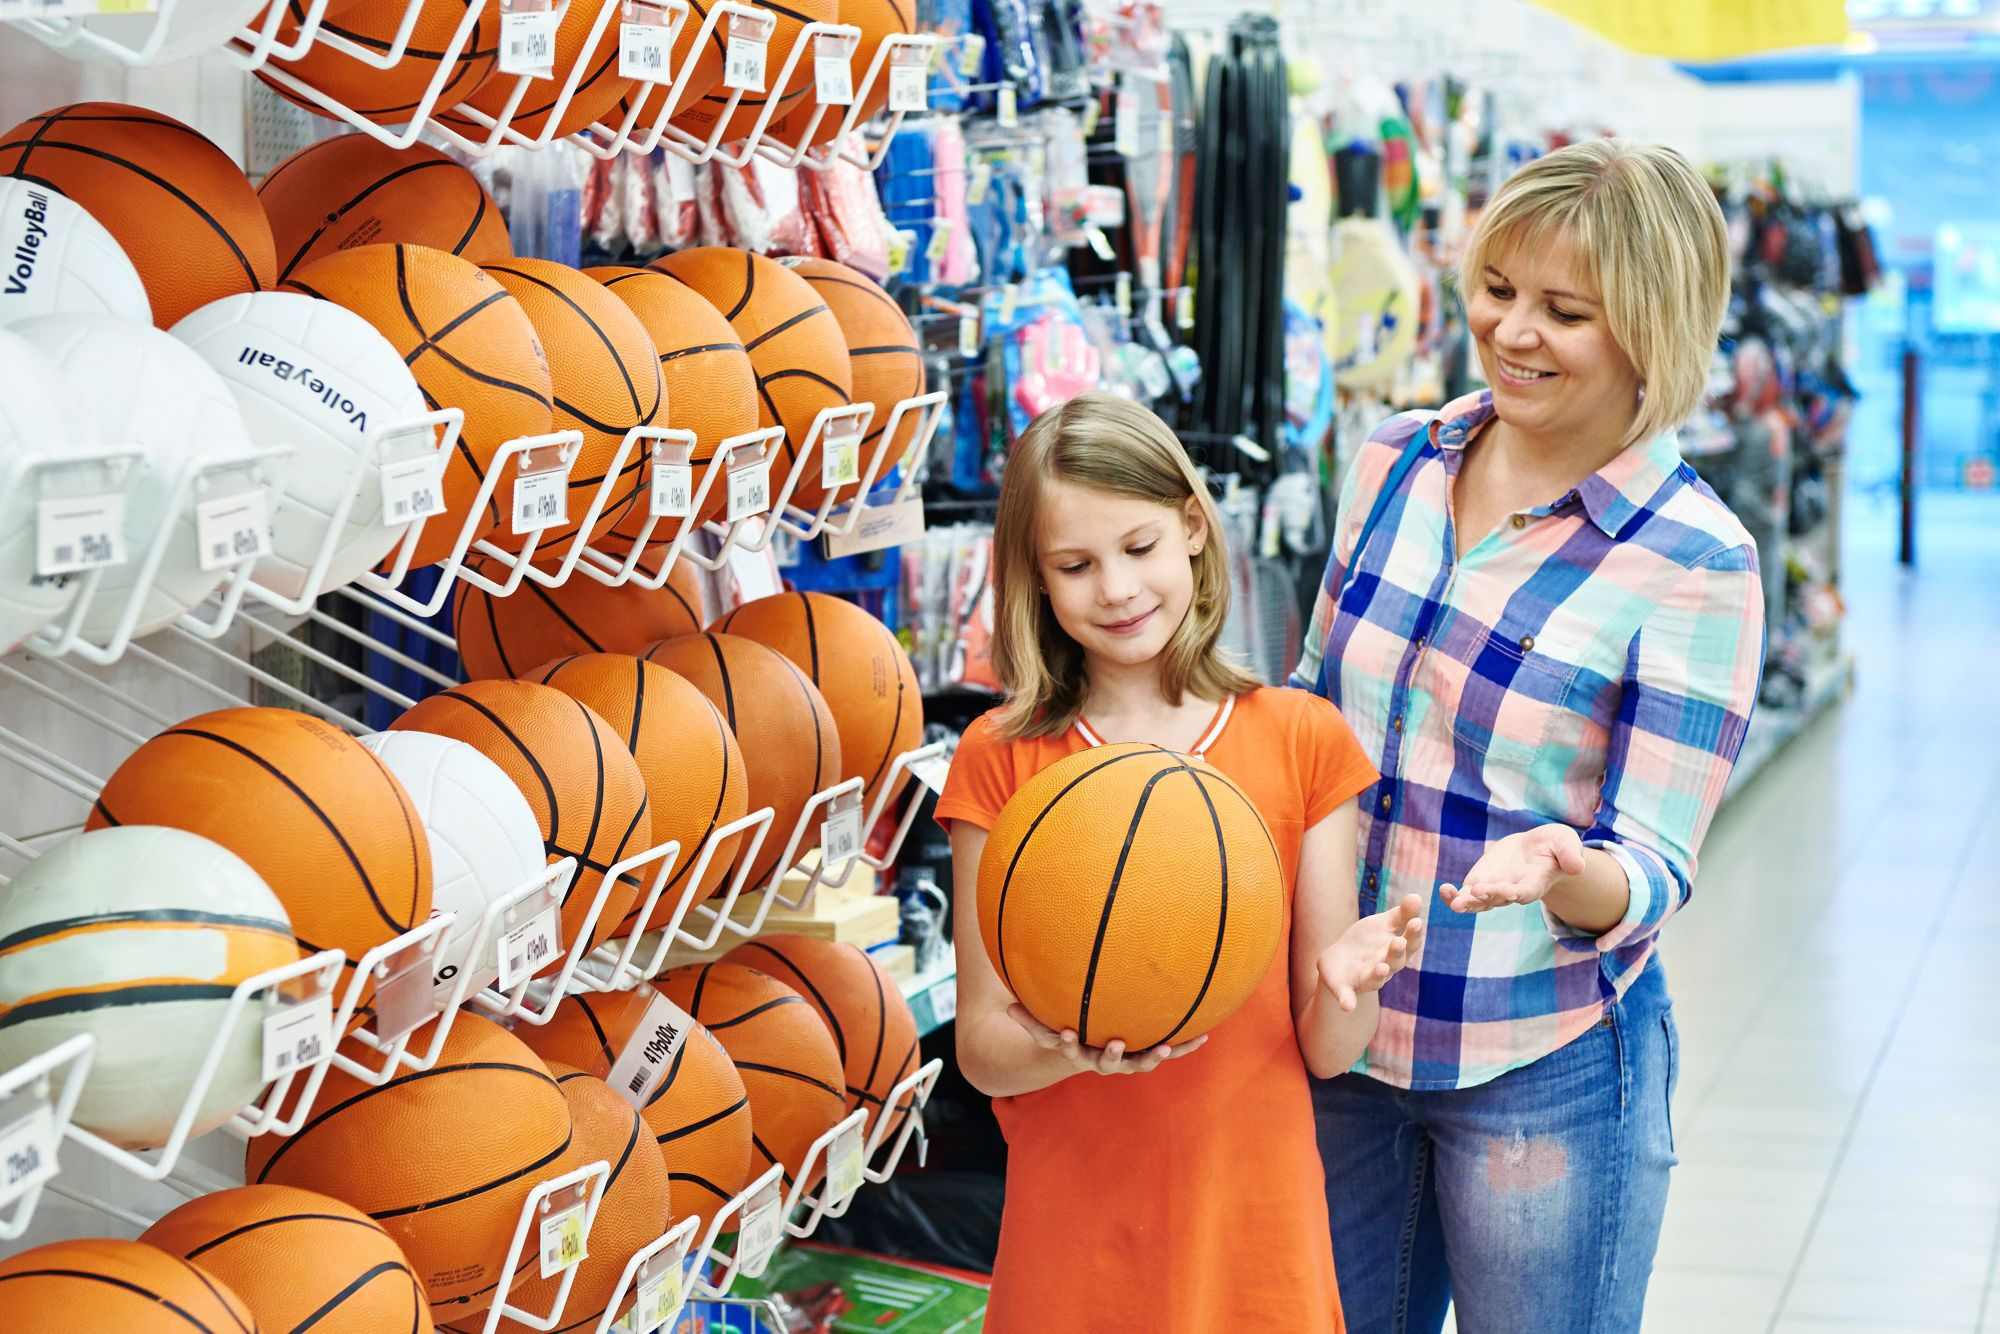 Sporting Goods - Retail